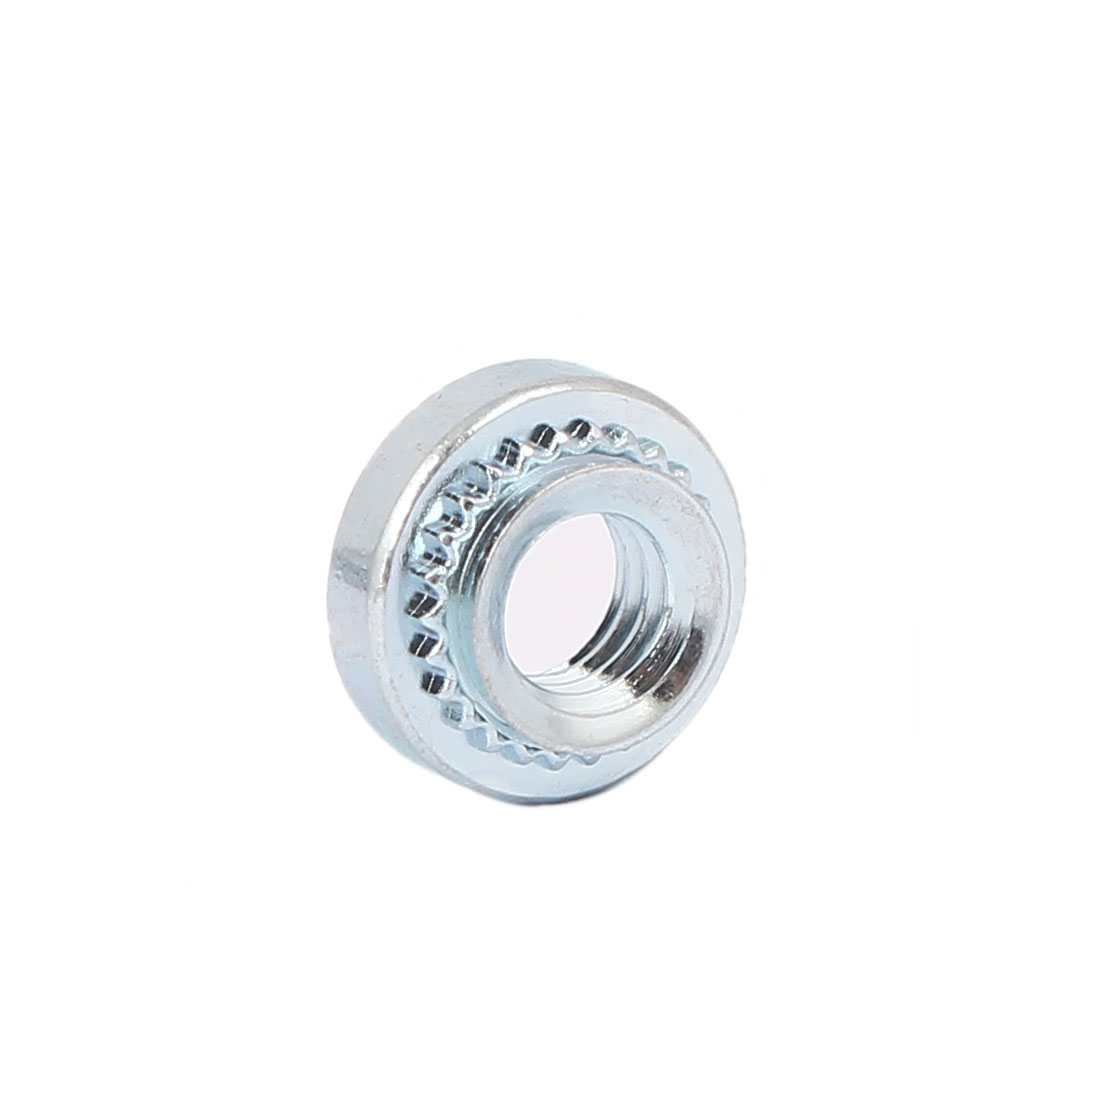 M4 Carbon Steel Self Clinching Rivet Nut Fastener 200pcs for 1.4mm Thin Plates - image 2 of 3